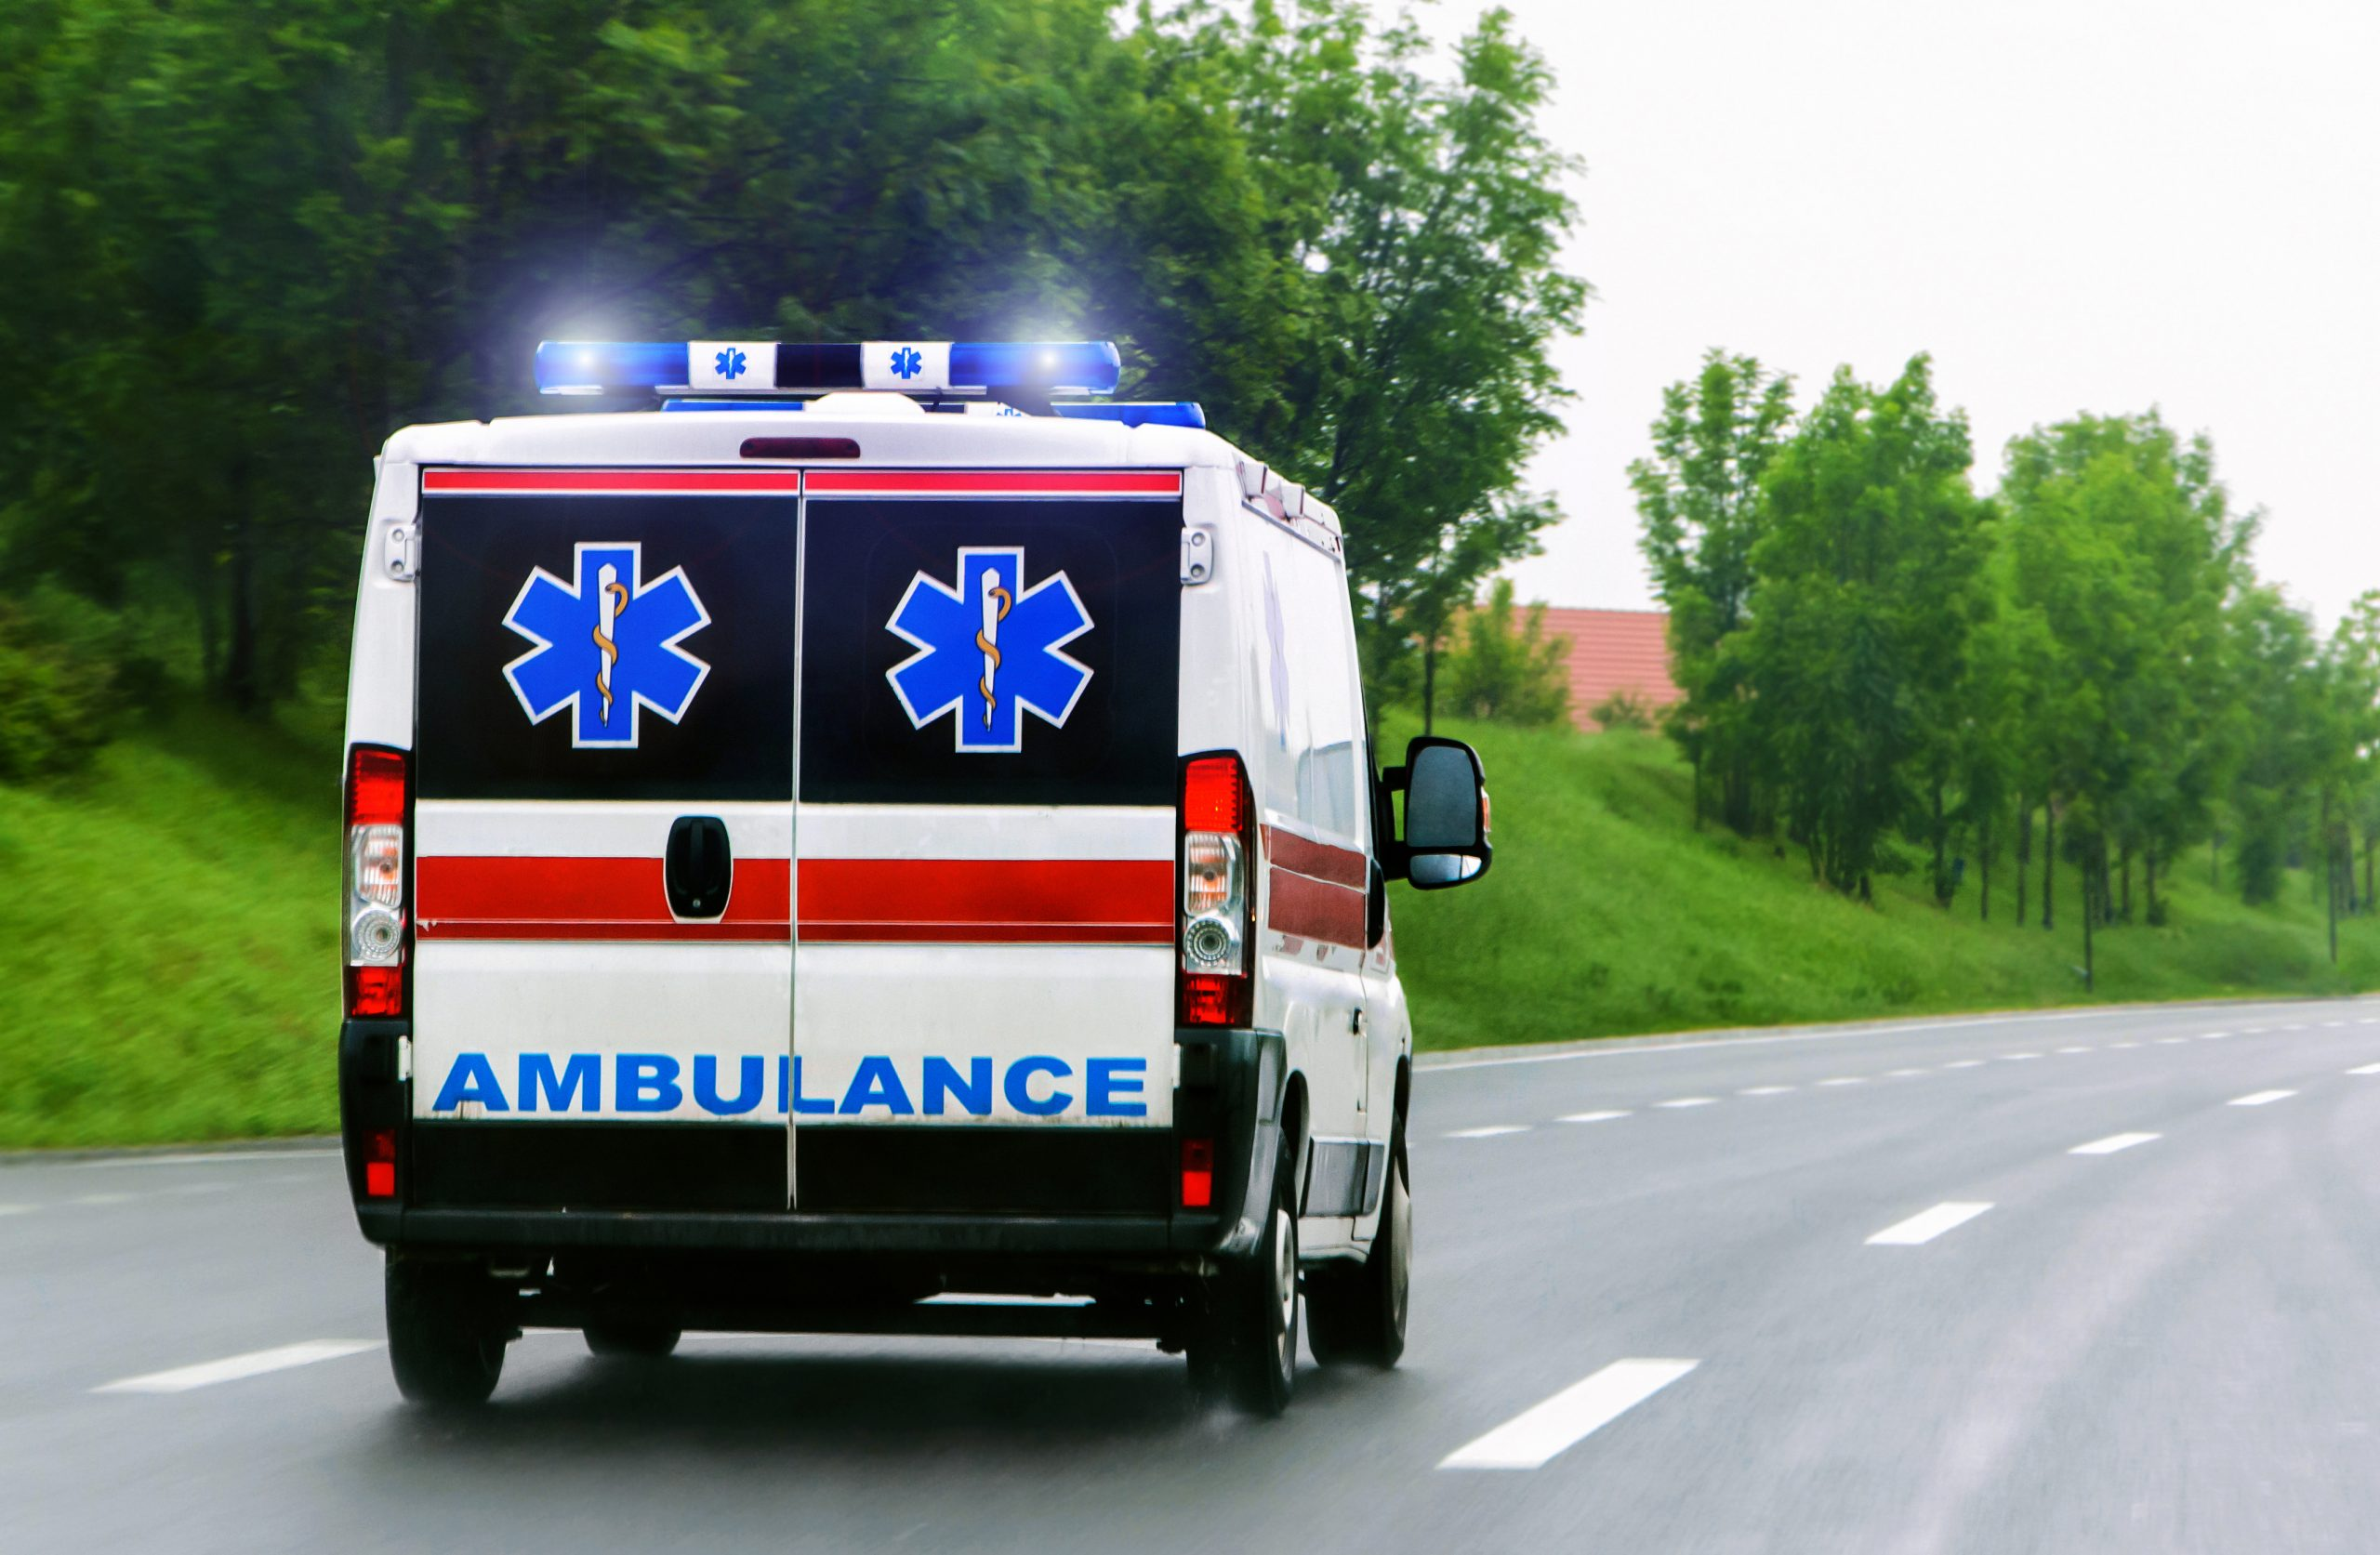 Safety solutions for emergency vehicles